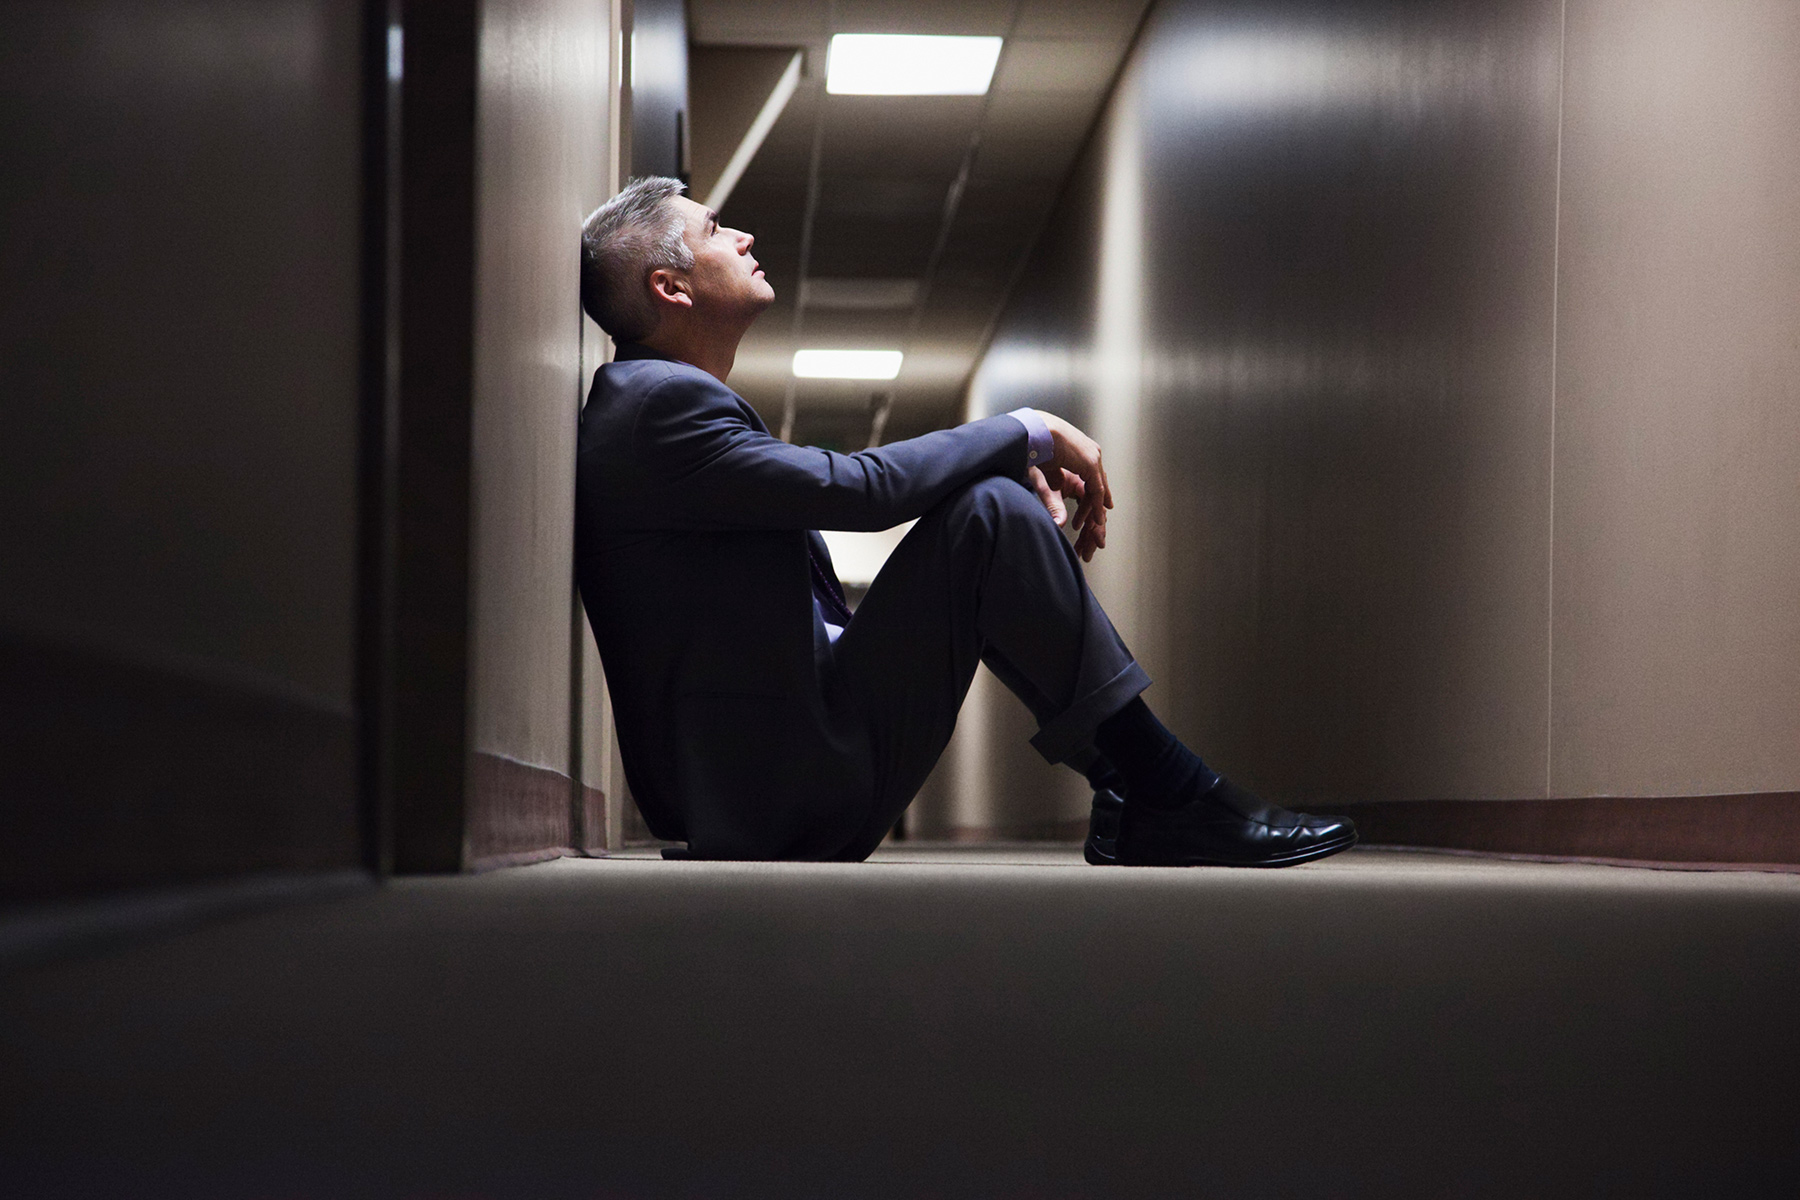 Could Propecia Up Young Men's Suicide Risk?